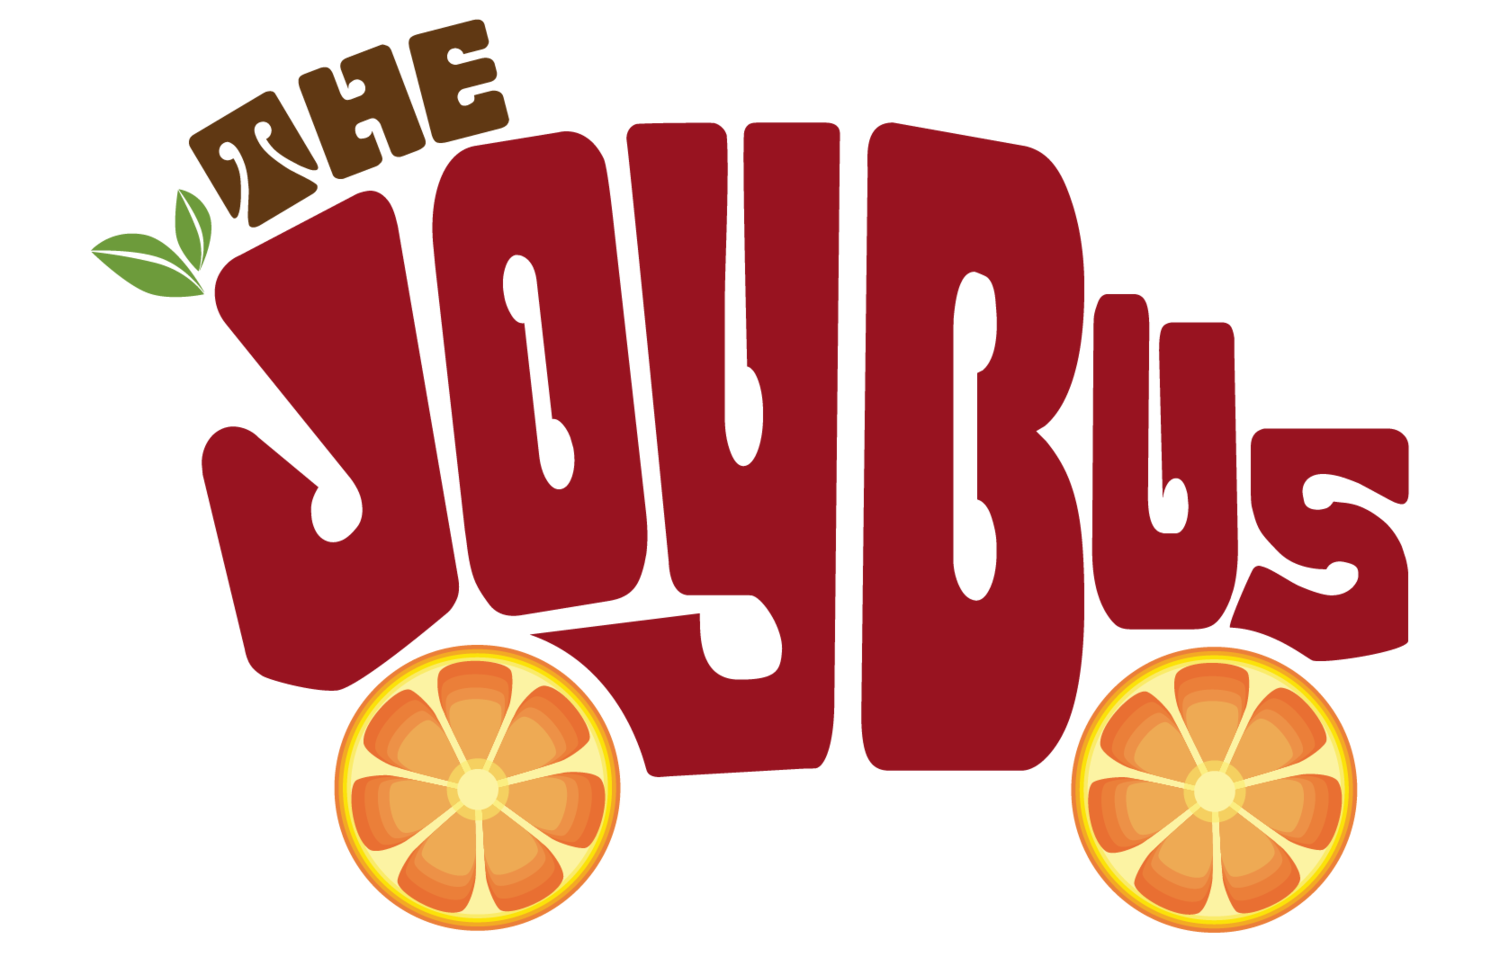 Diner clipart go to. The joy bus